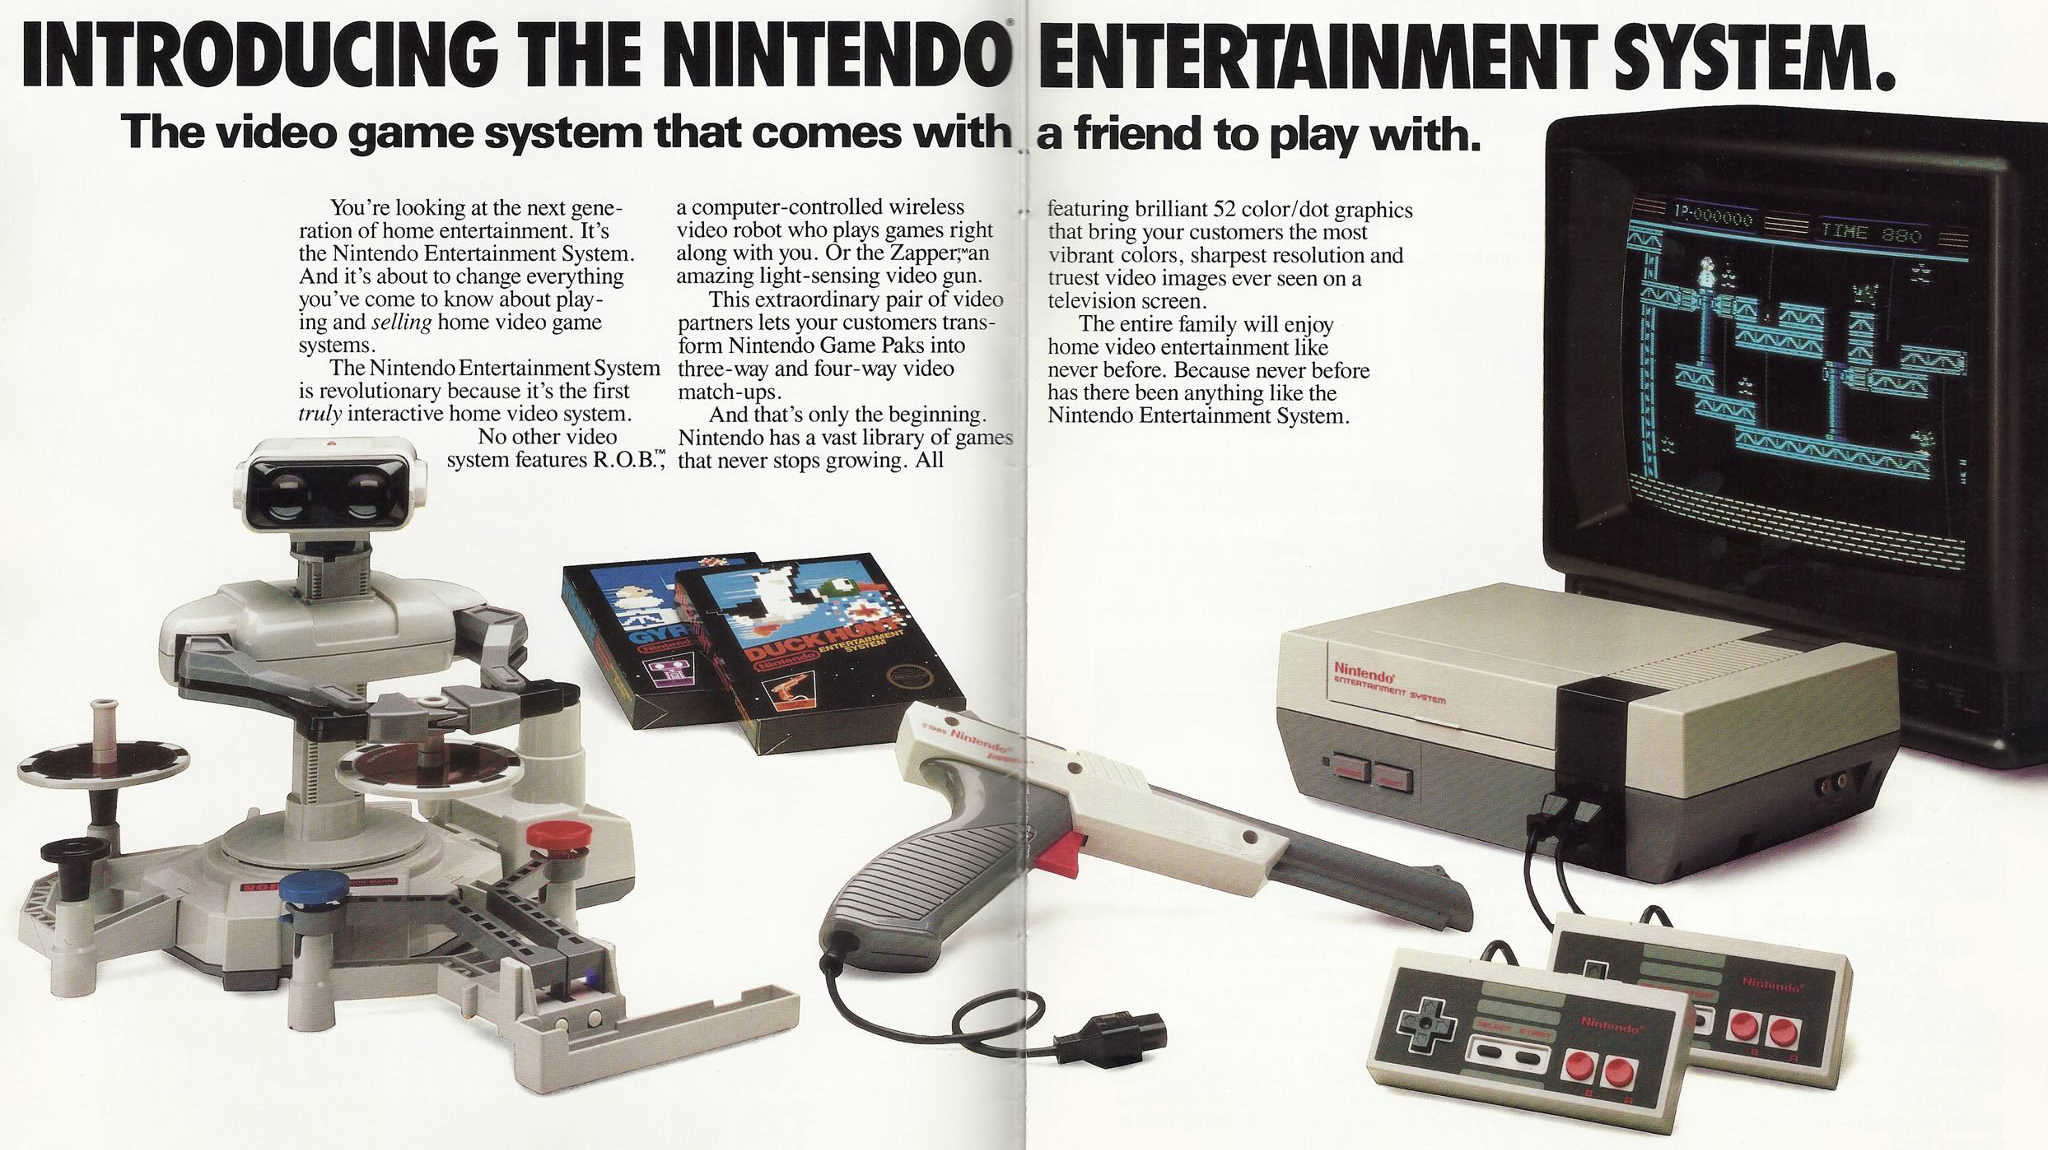 From N.E.S. to iOS: Nintendo is coming to your iPhone.